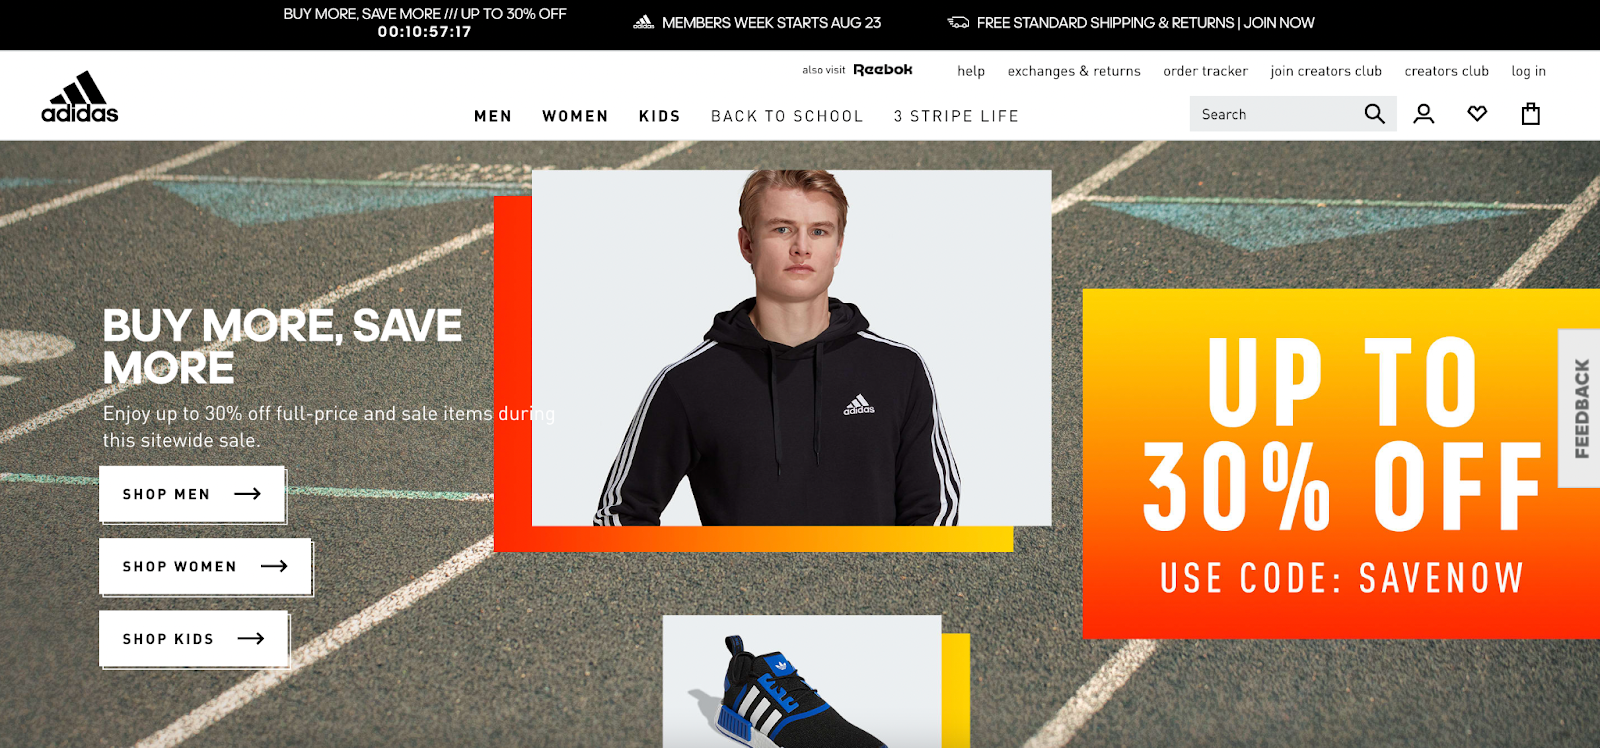 The homepage of the Adidas website